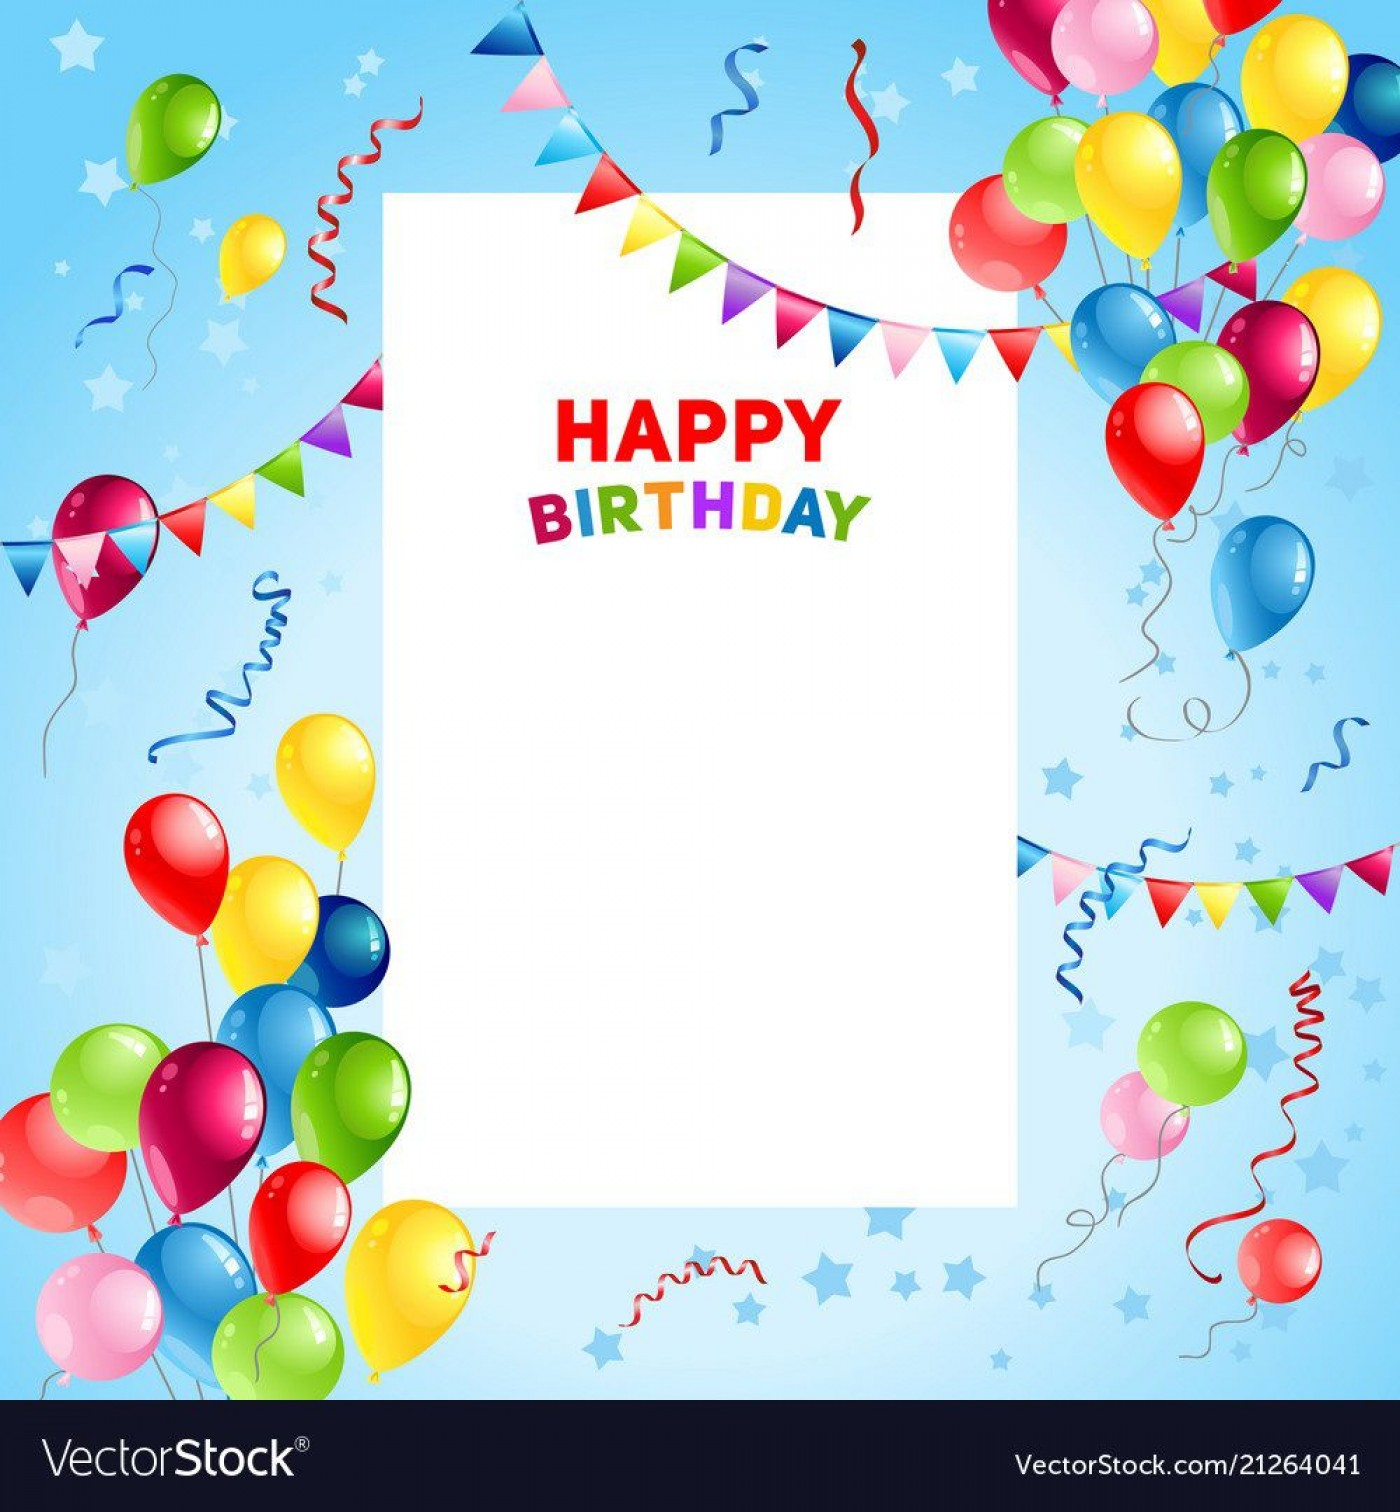 002 Surprising Template For Birthday Card Idea  Microsoft Word Design Happy1400